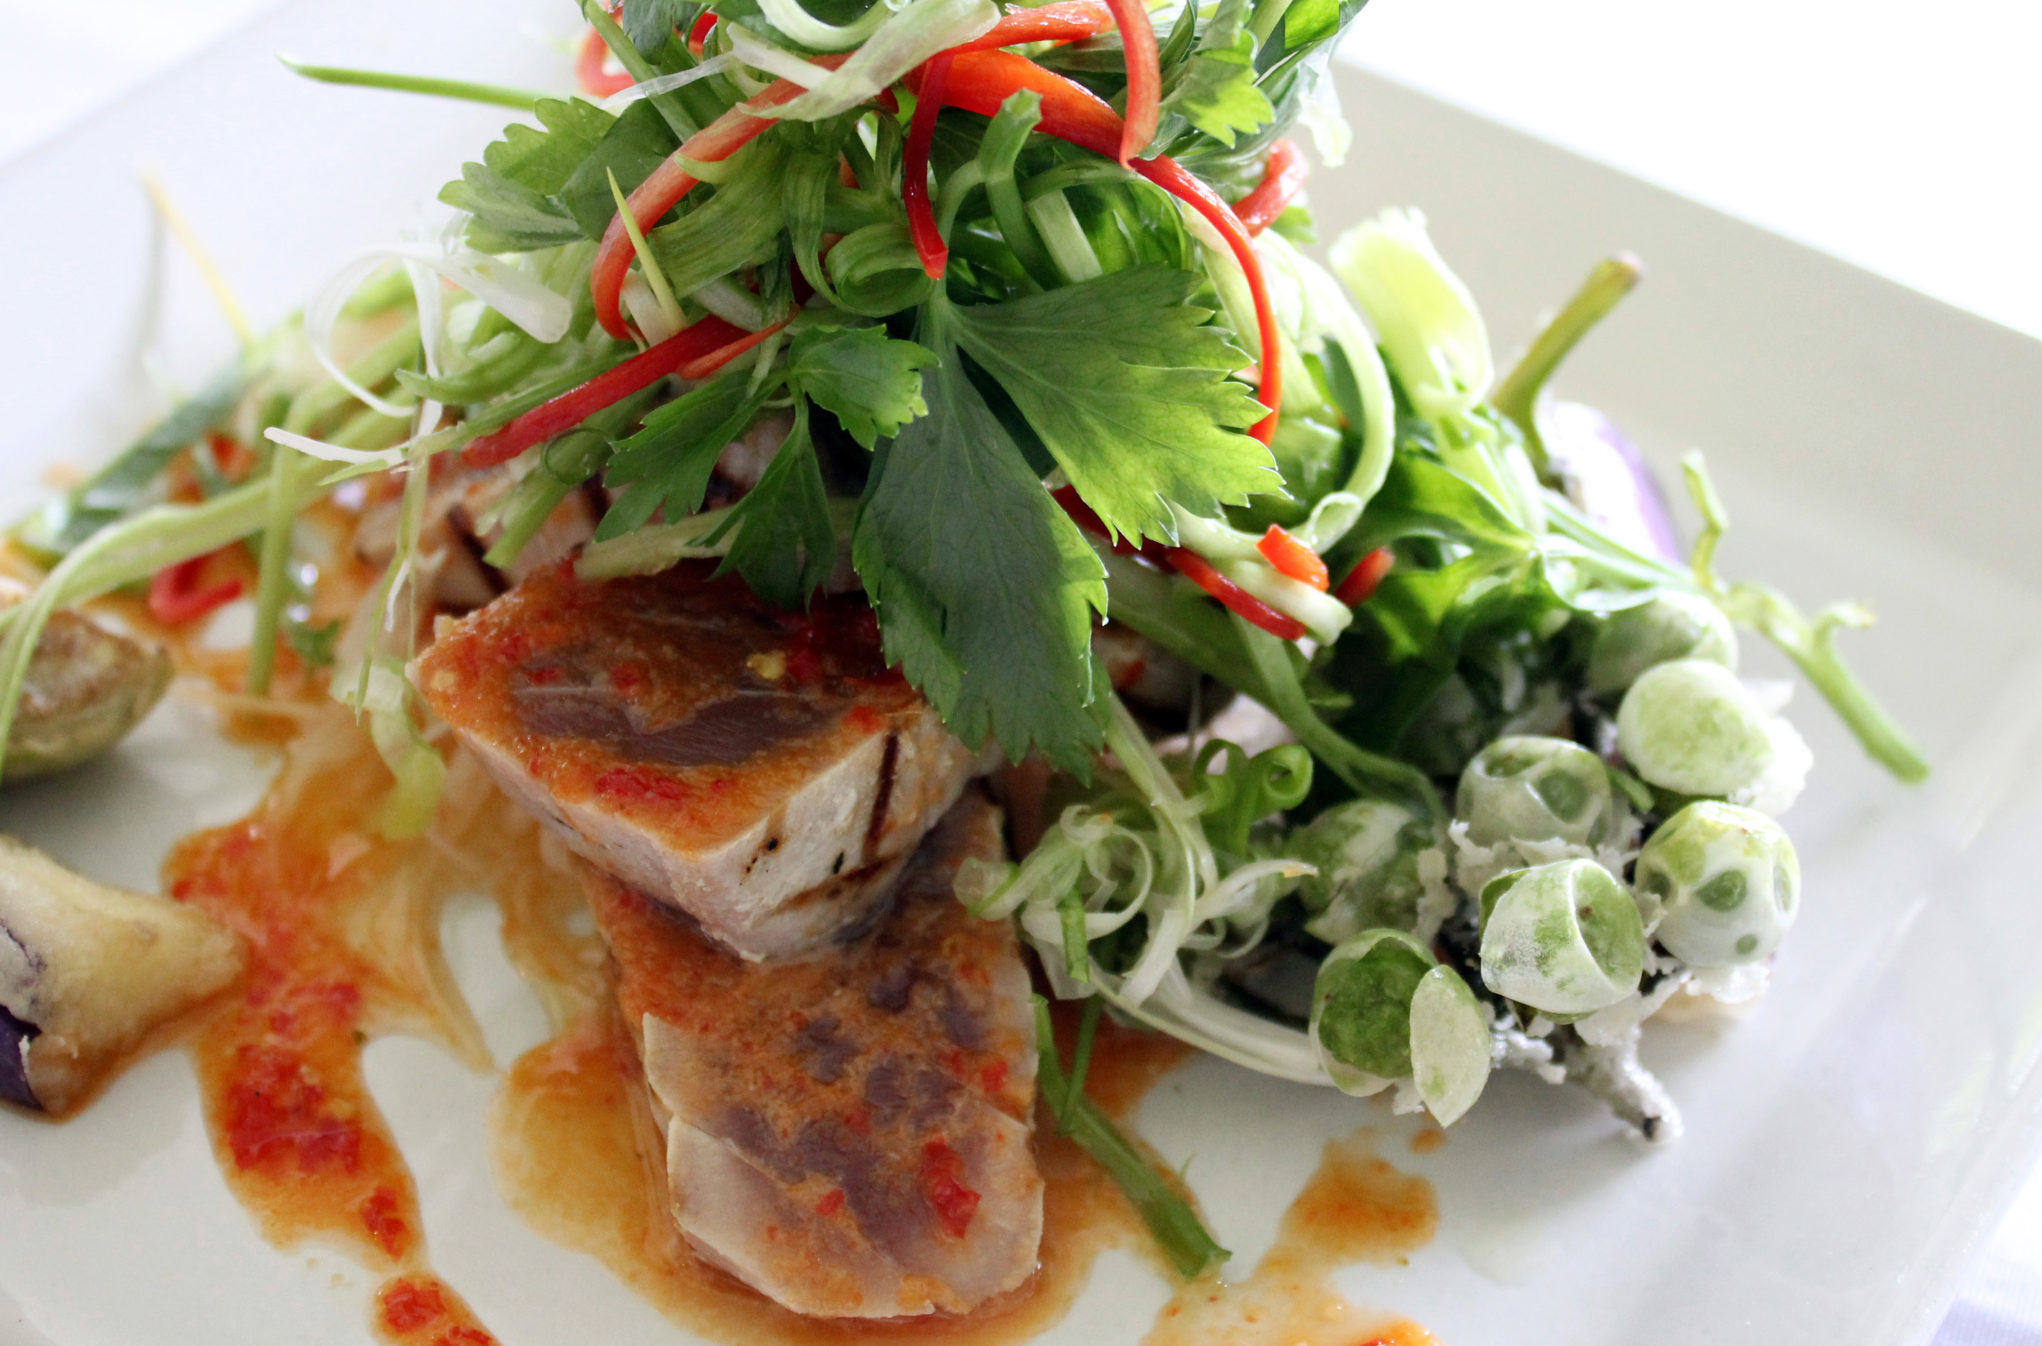 Tamarind Hill Restaurant - Grilled Tuna Loin and White Radish with Lime and Chilli Vinaigrette